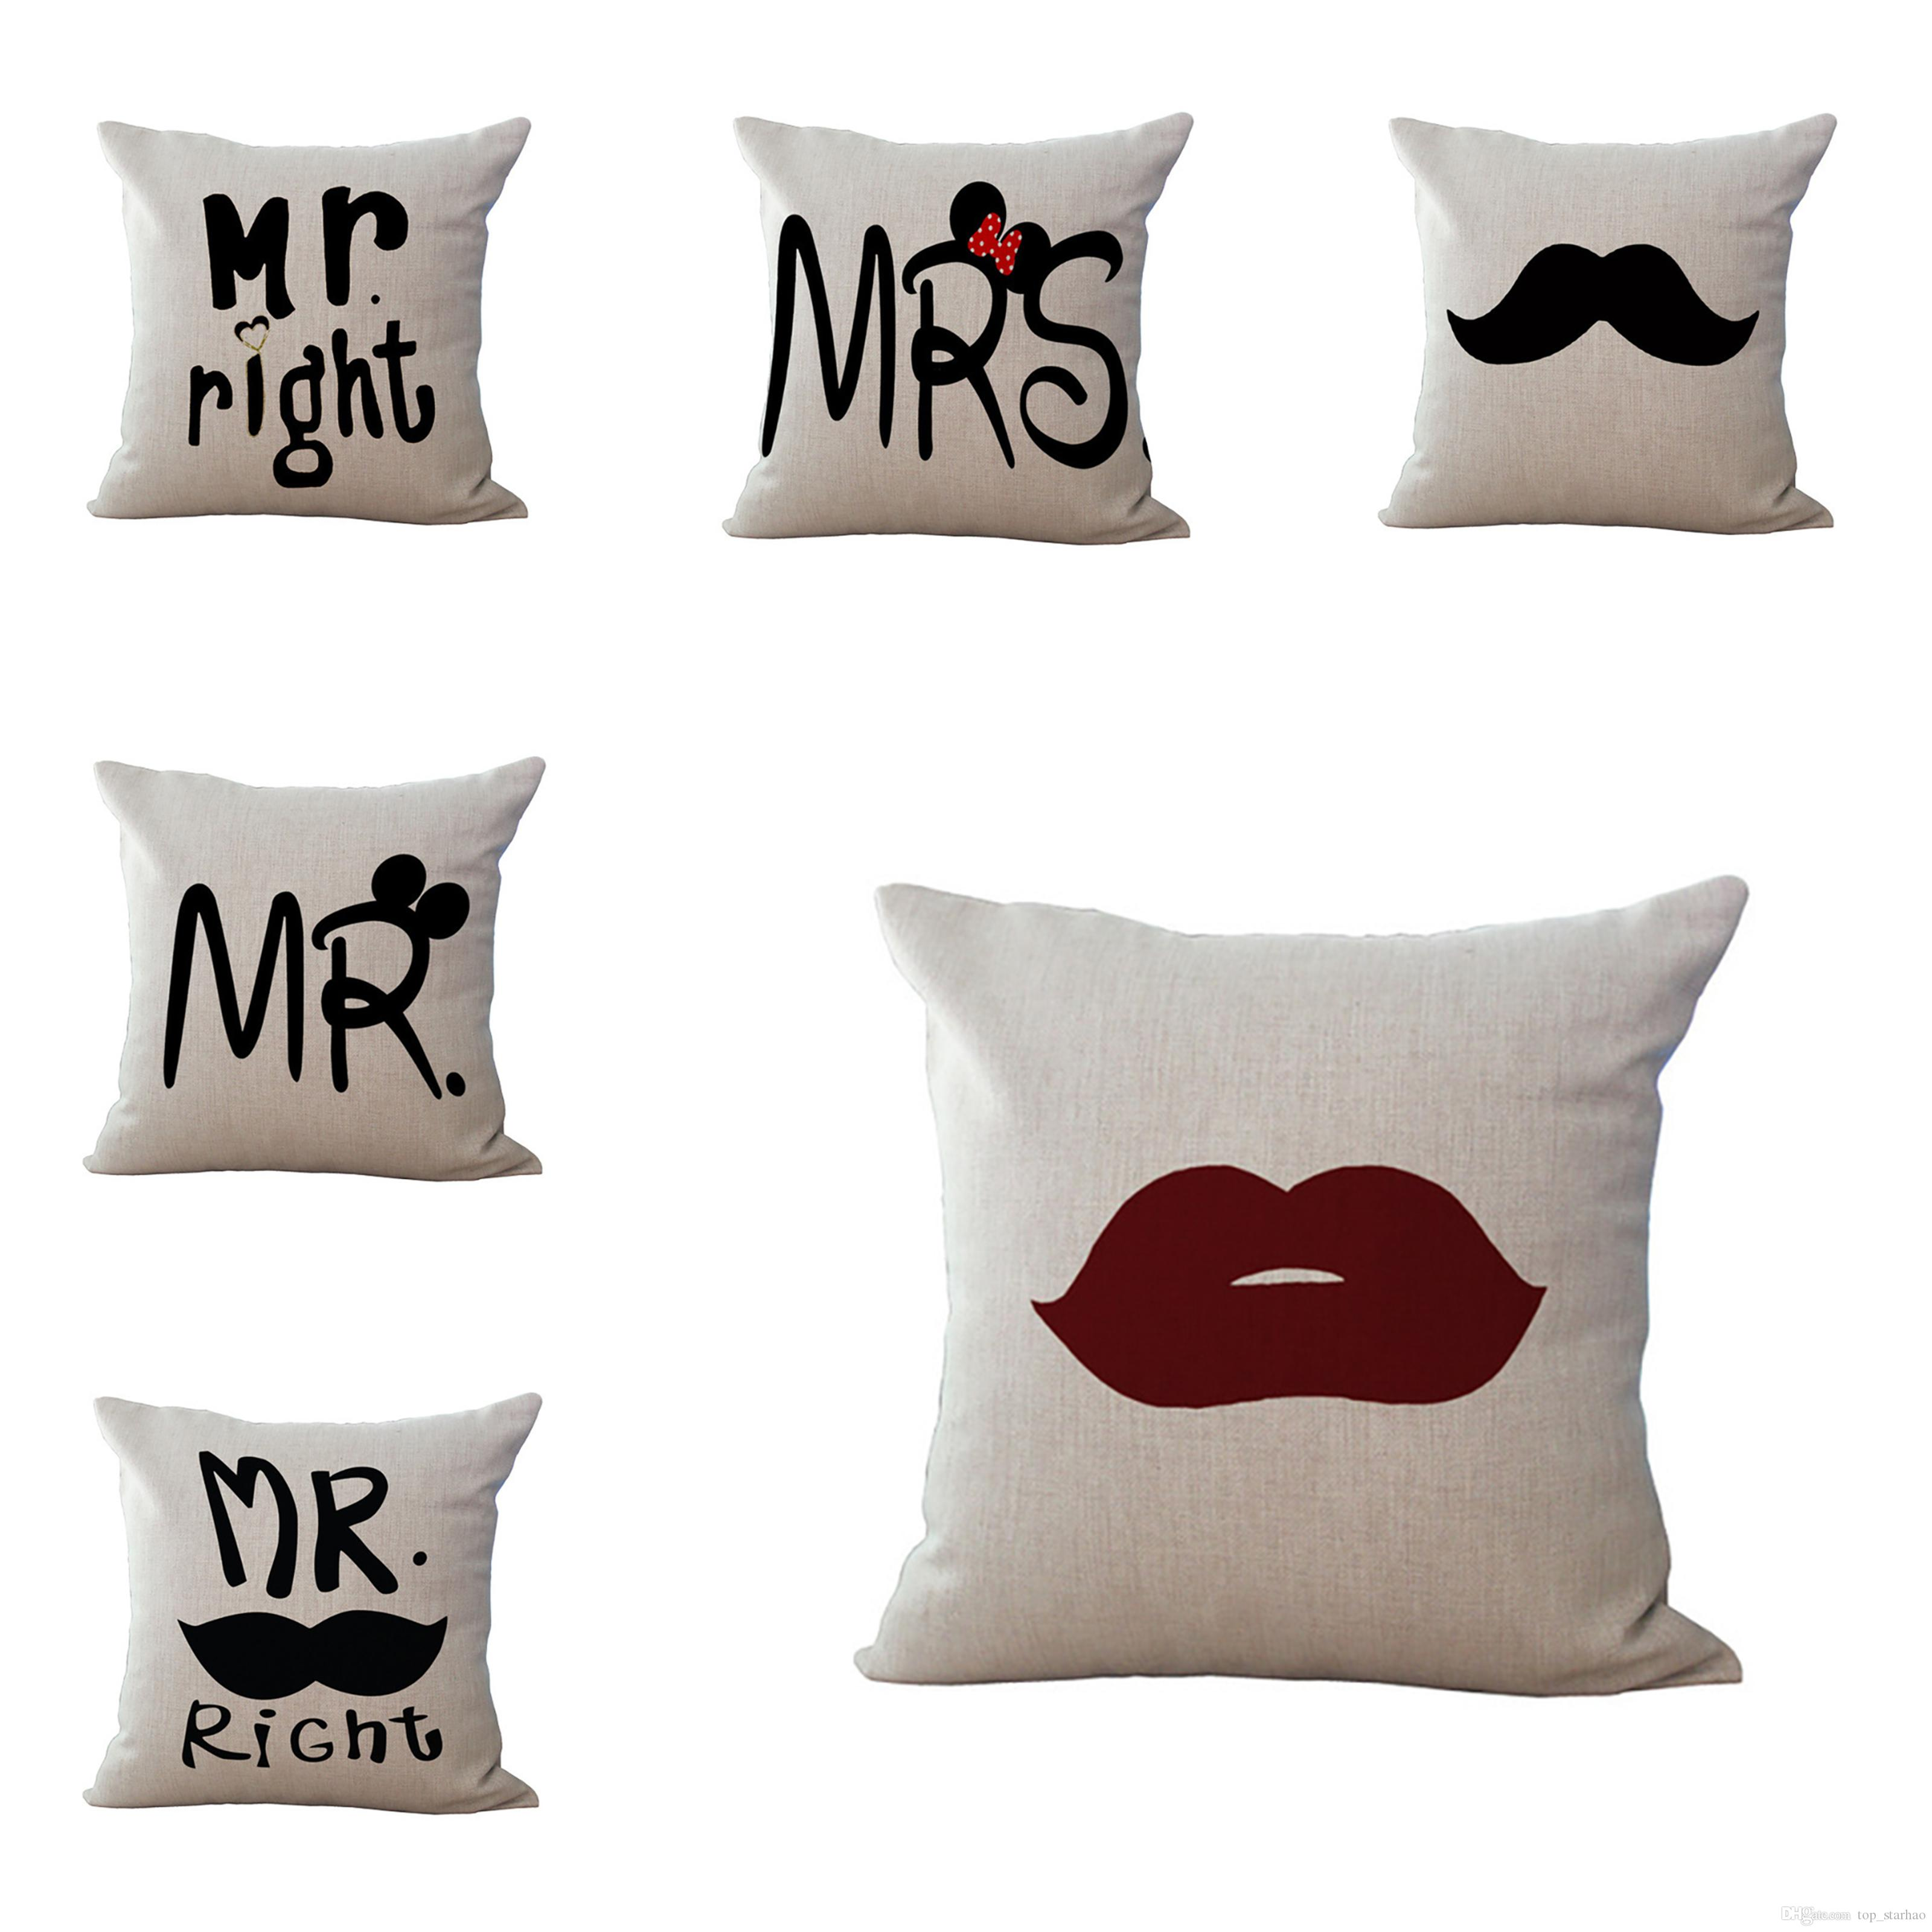 sofa box cushion covers white chesterfield hire 2018 new decorative mr mrs always right square cover customized pillow case the wedding letters cushions linen xl 468 throw